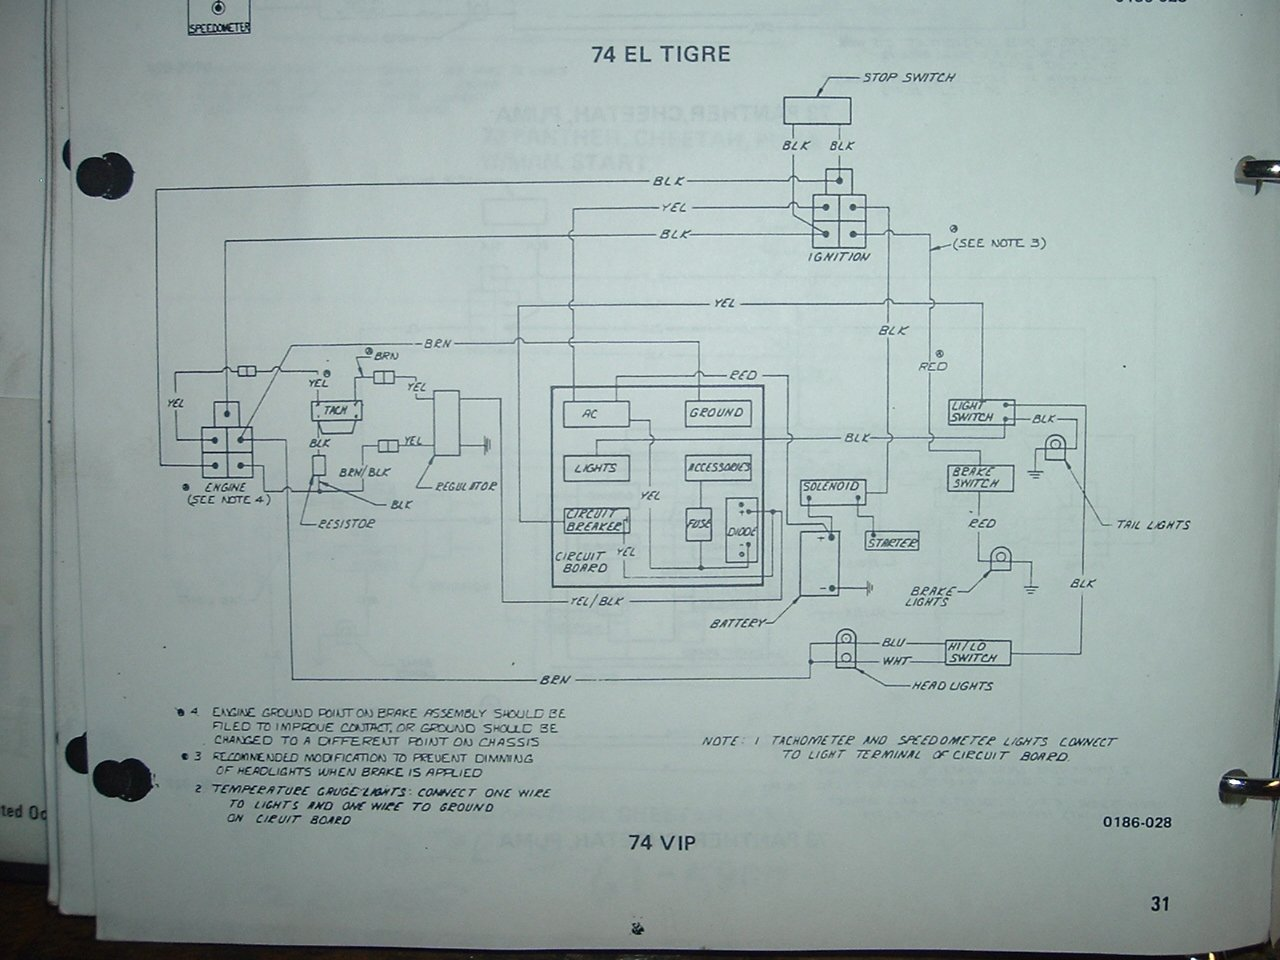 hight resolution of 1992 arctic cat 700 wildcat wiring diagram free wiring diagram for arctic cat wildcat tracks arctic cat wildcat 650 wiring diagram